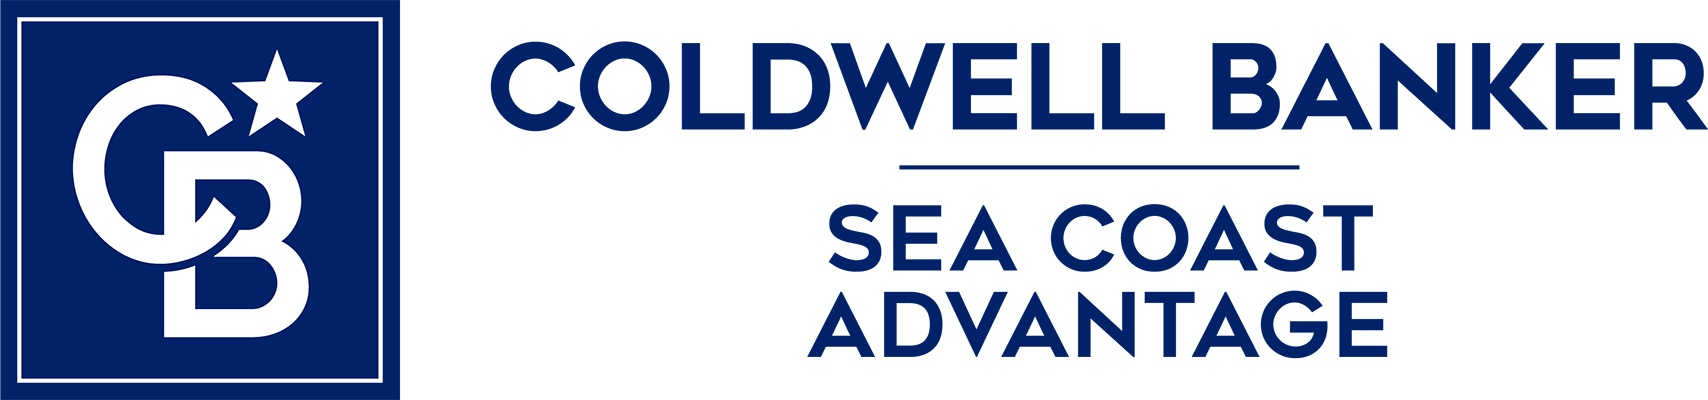 Robert Perdue - Coldwell Banker Sea Coast Advantage Realty